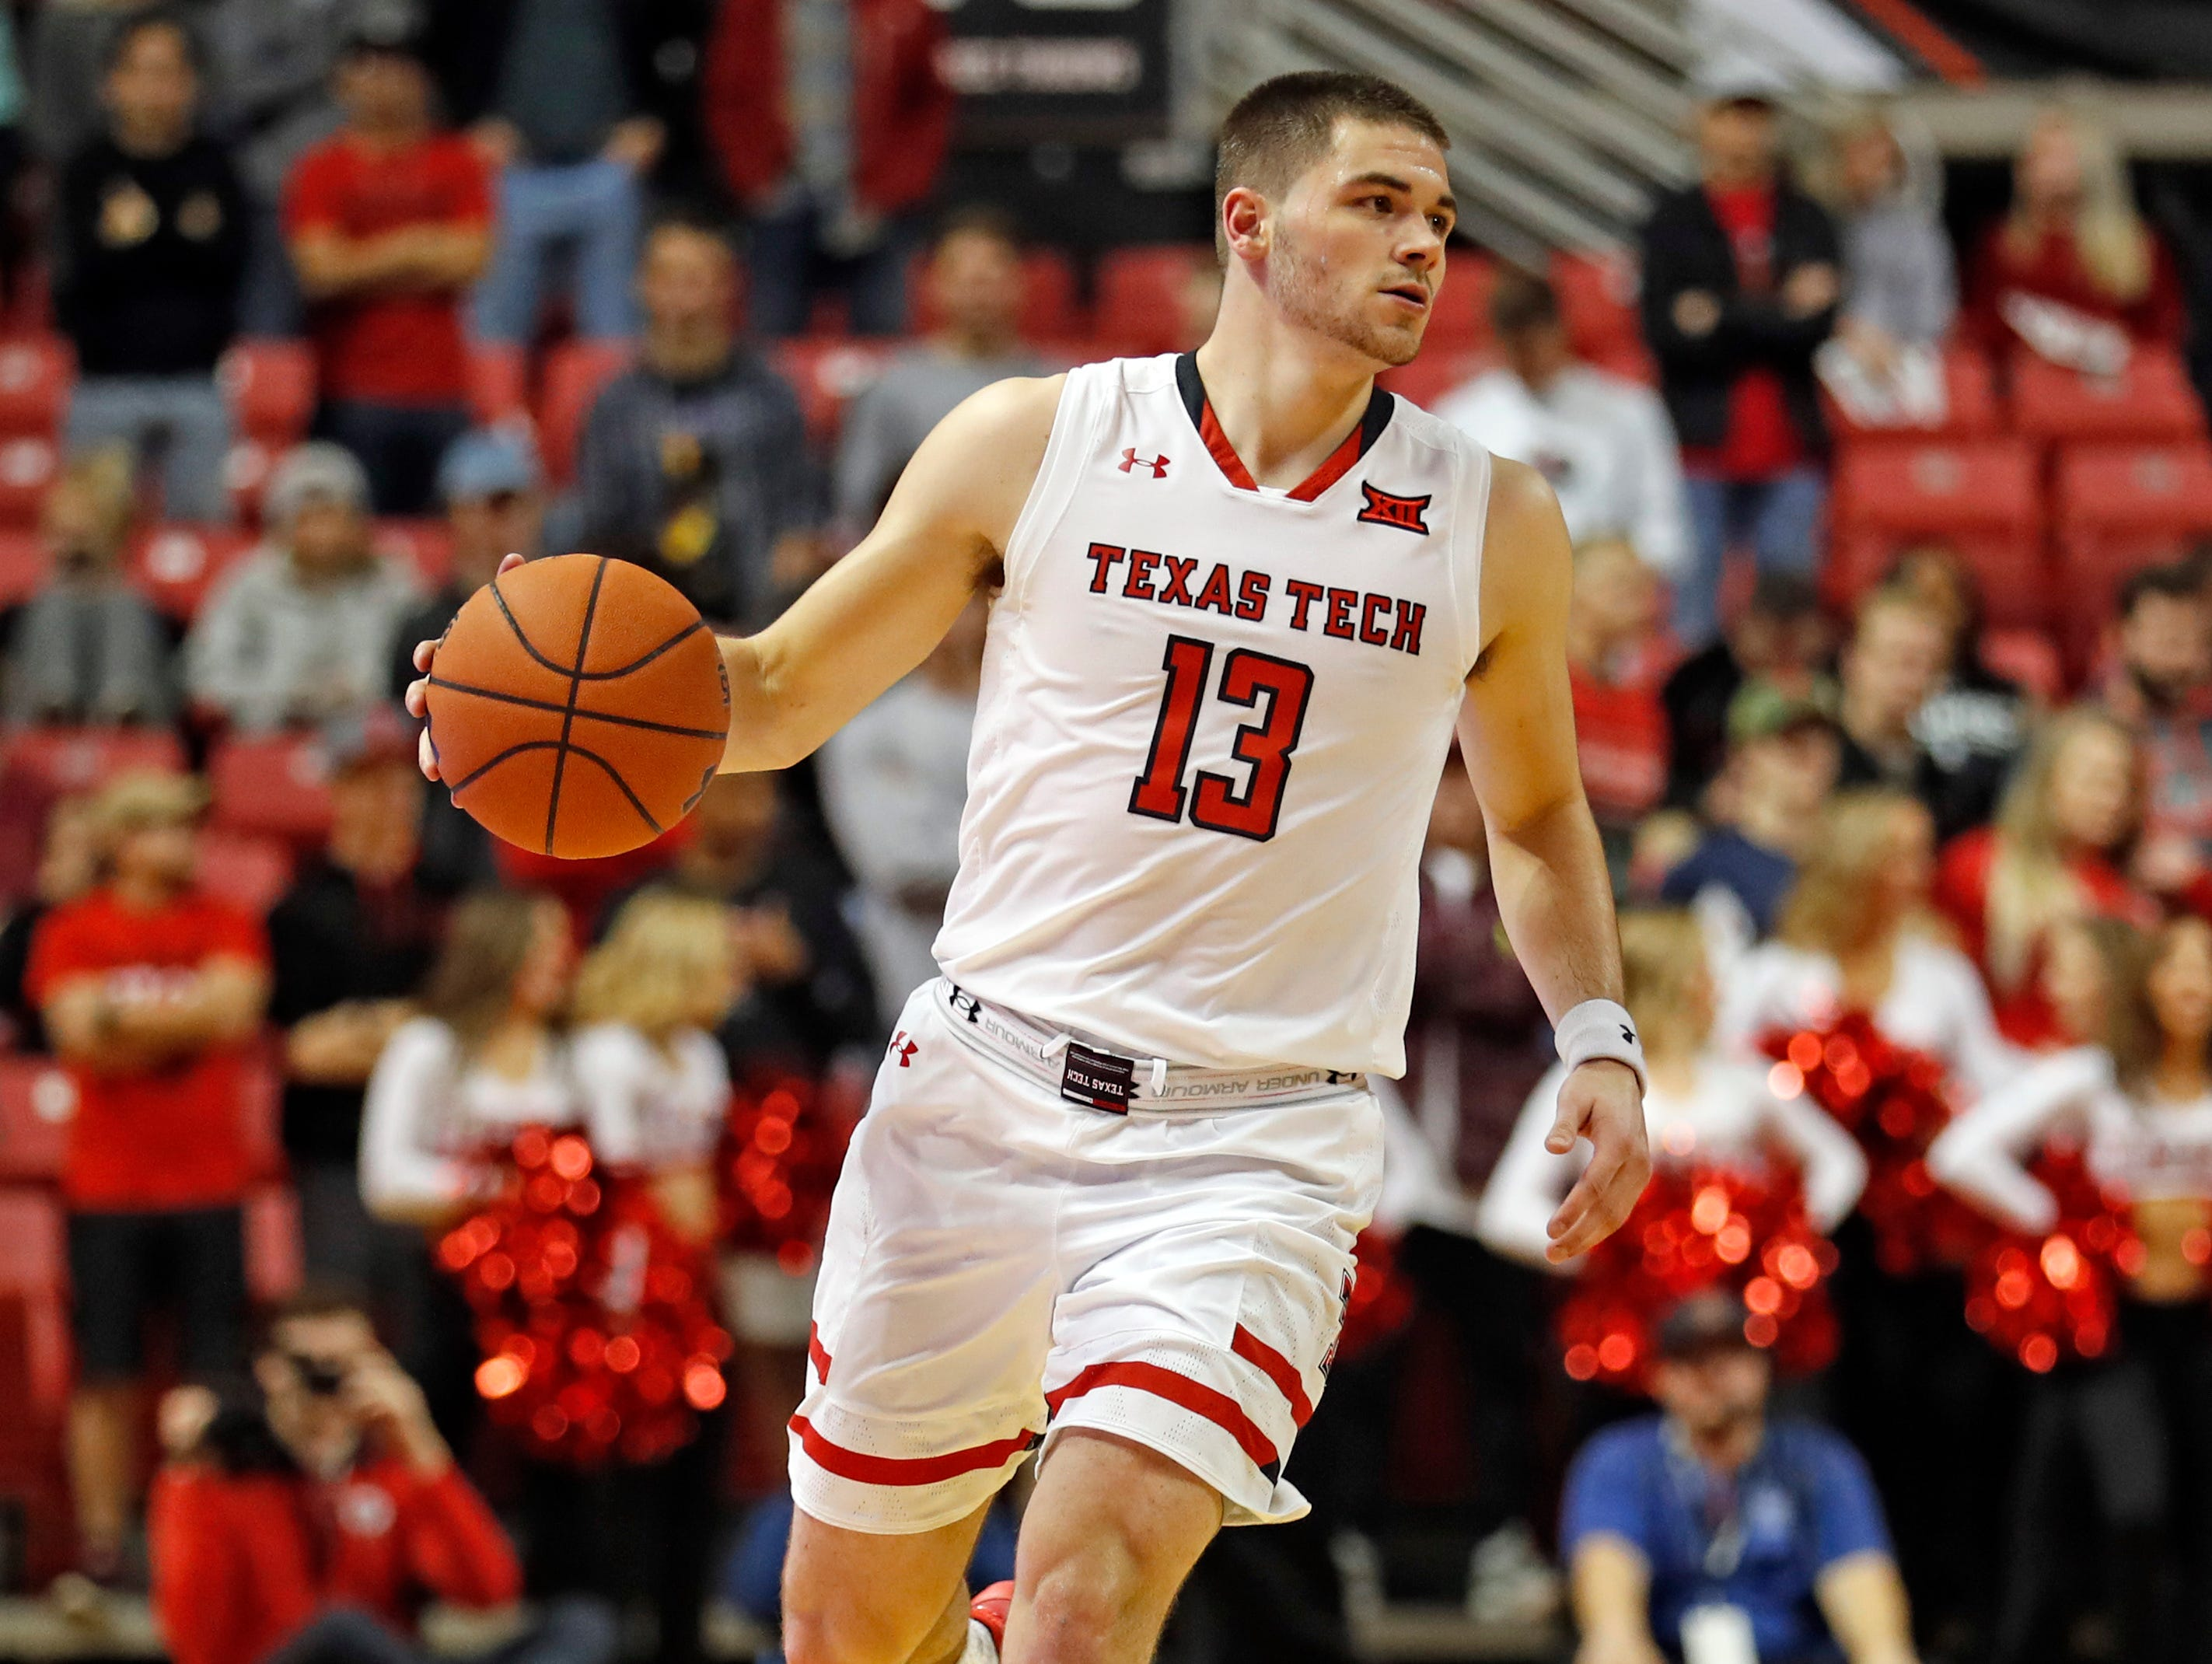 Texas Tech's Matt Mooney (13) dribbles the ball down the court during the second half of an NCAA college basketball game against Northwestern State, Wednesday, Dec. 12, 2018, in Lubbock, Texas. (AP Photo/Brad Tollefson)